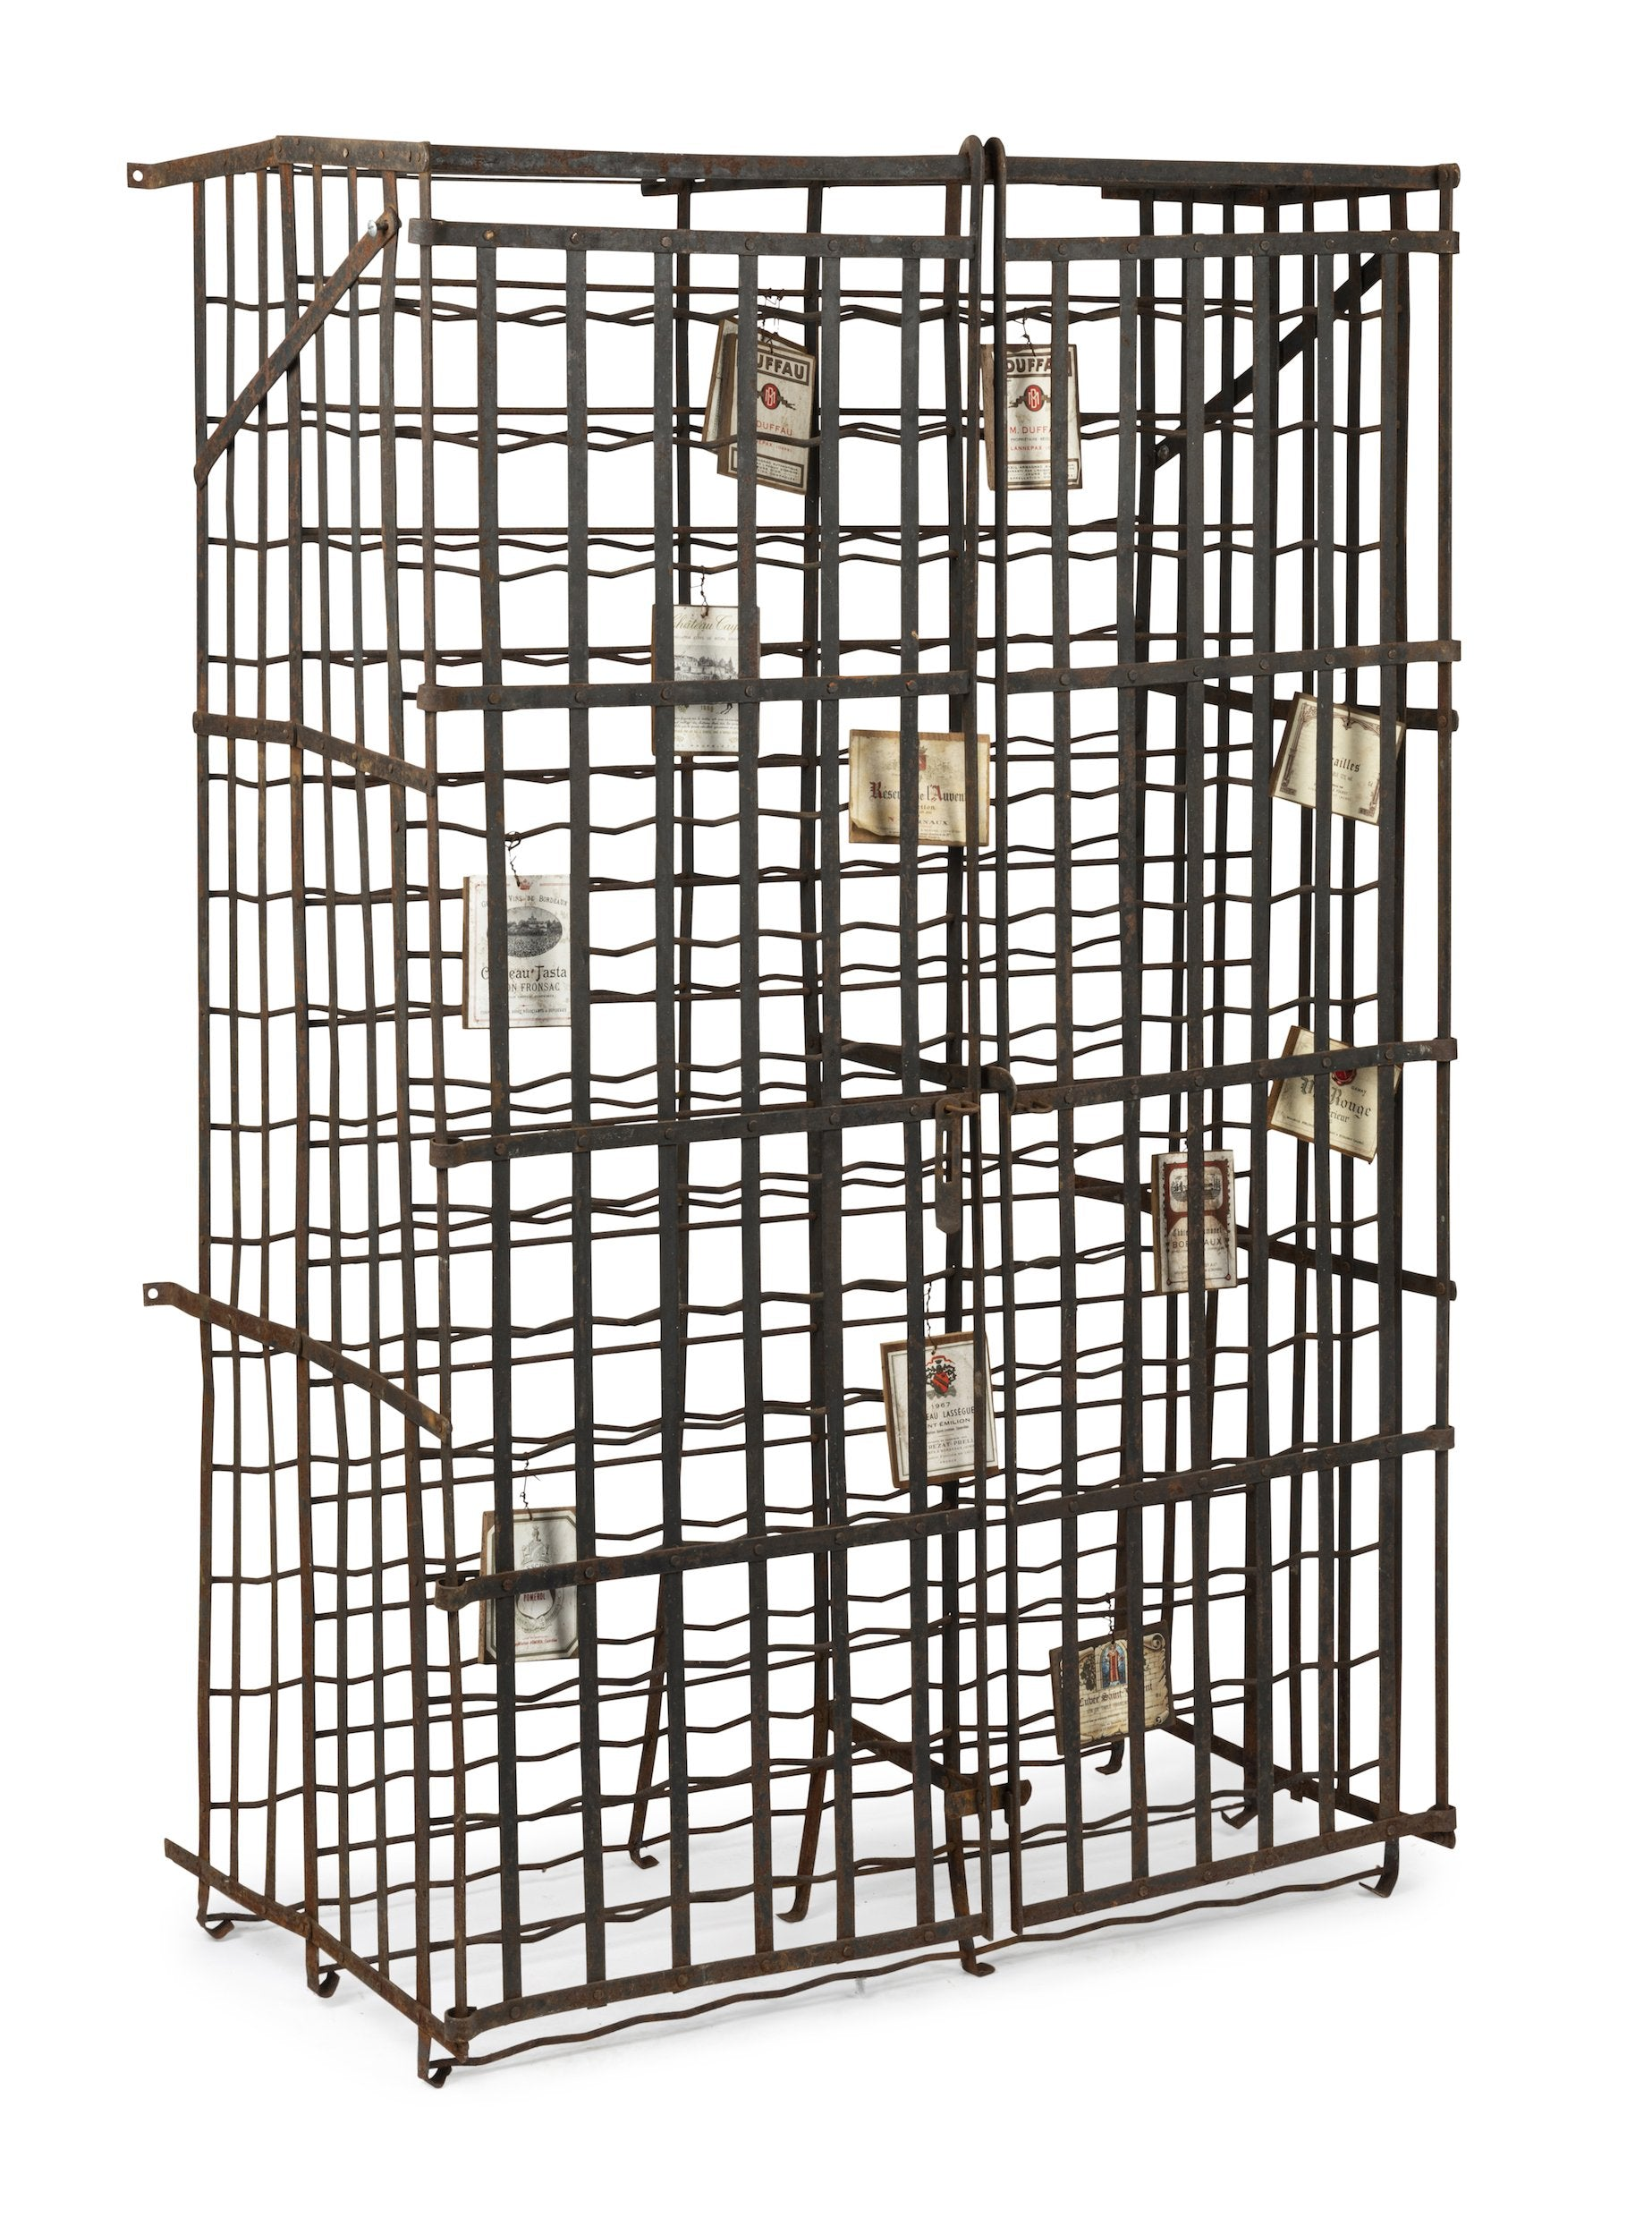 SOLD A large wrought iron two door lockable wine cage, French 19th Century